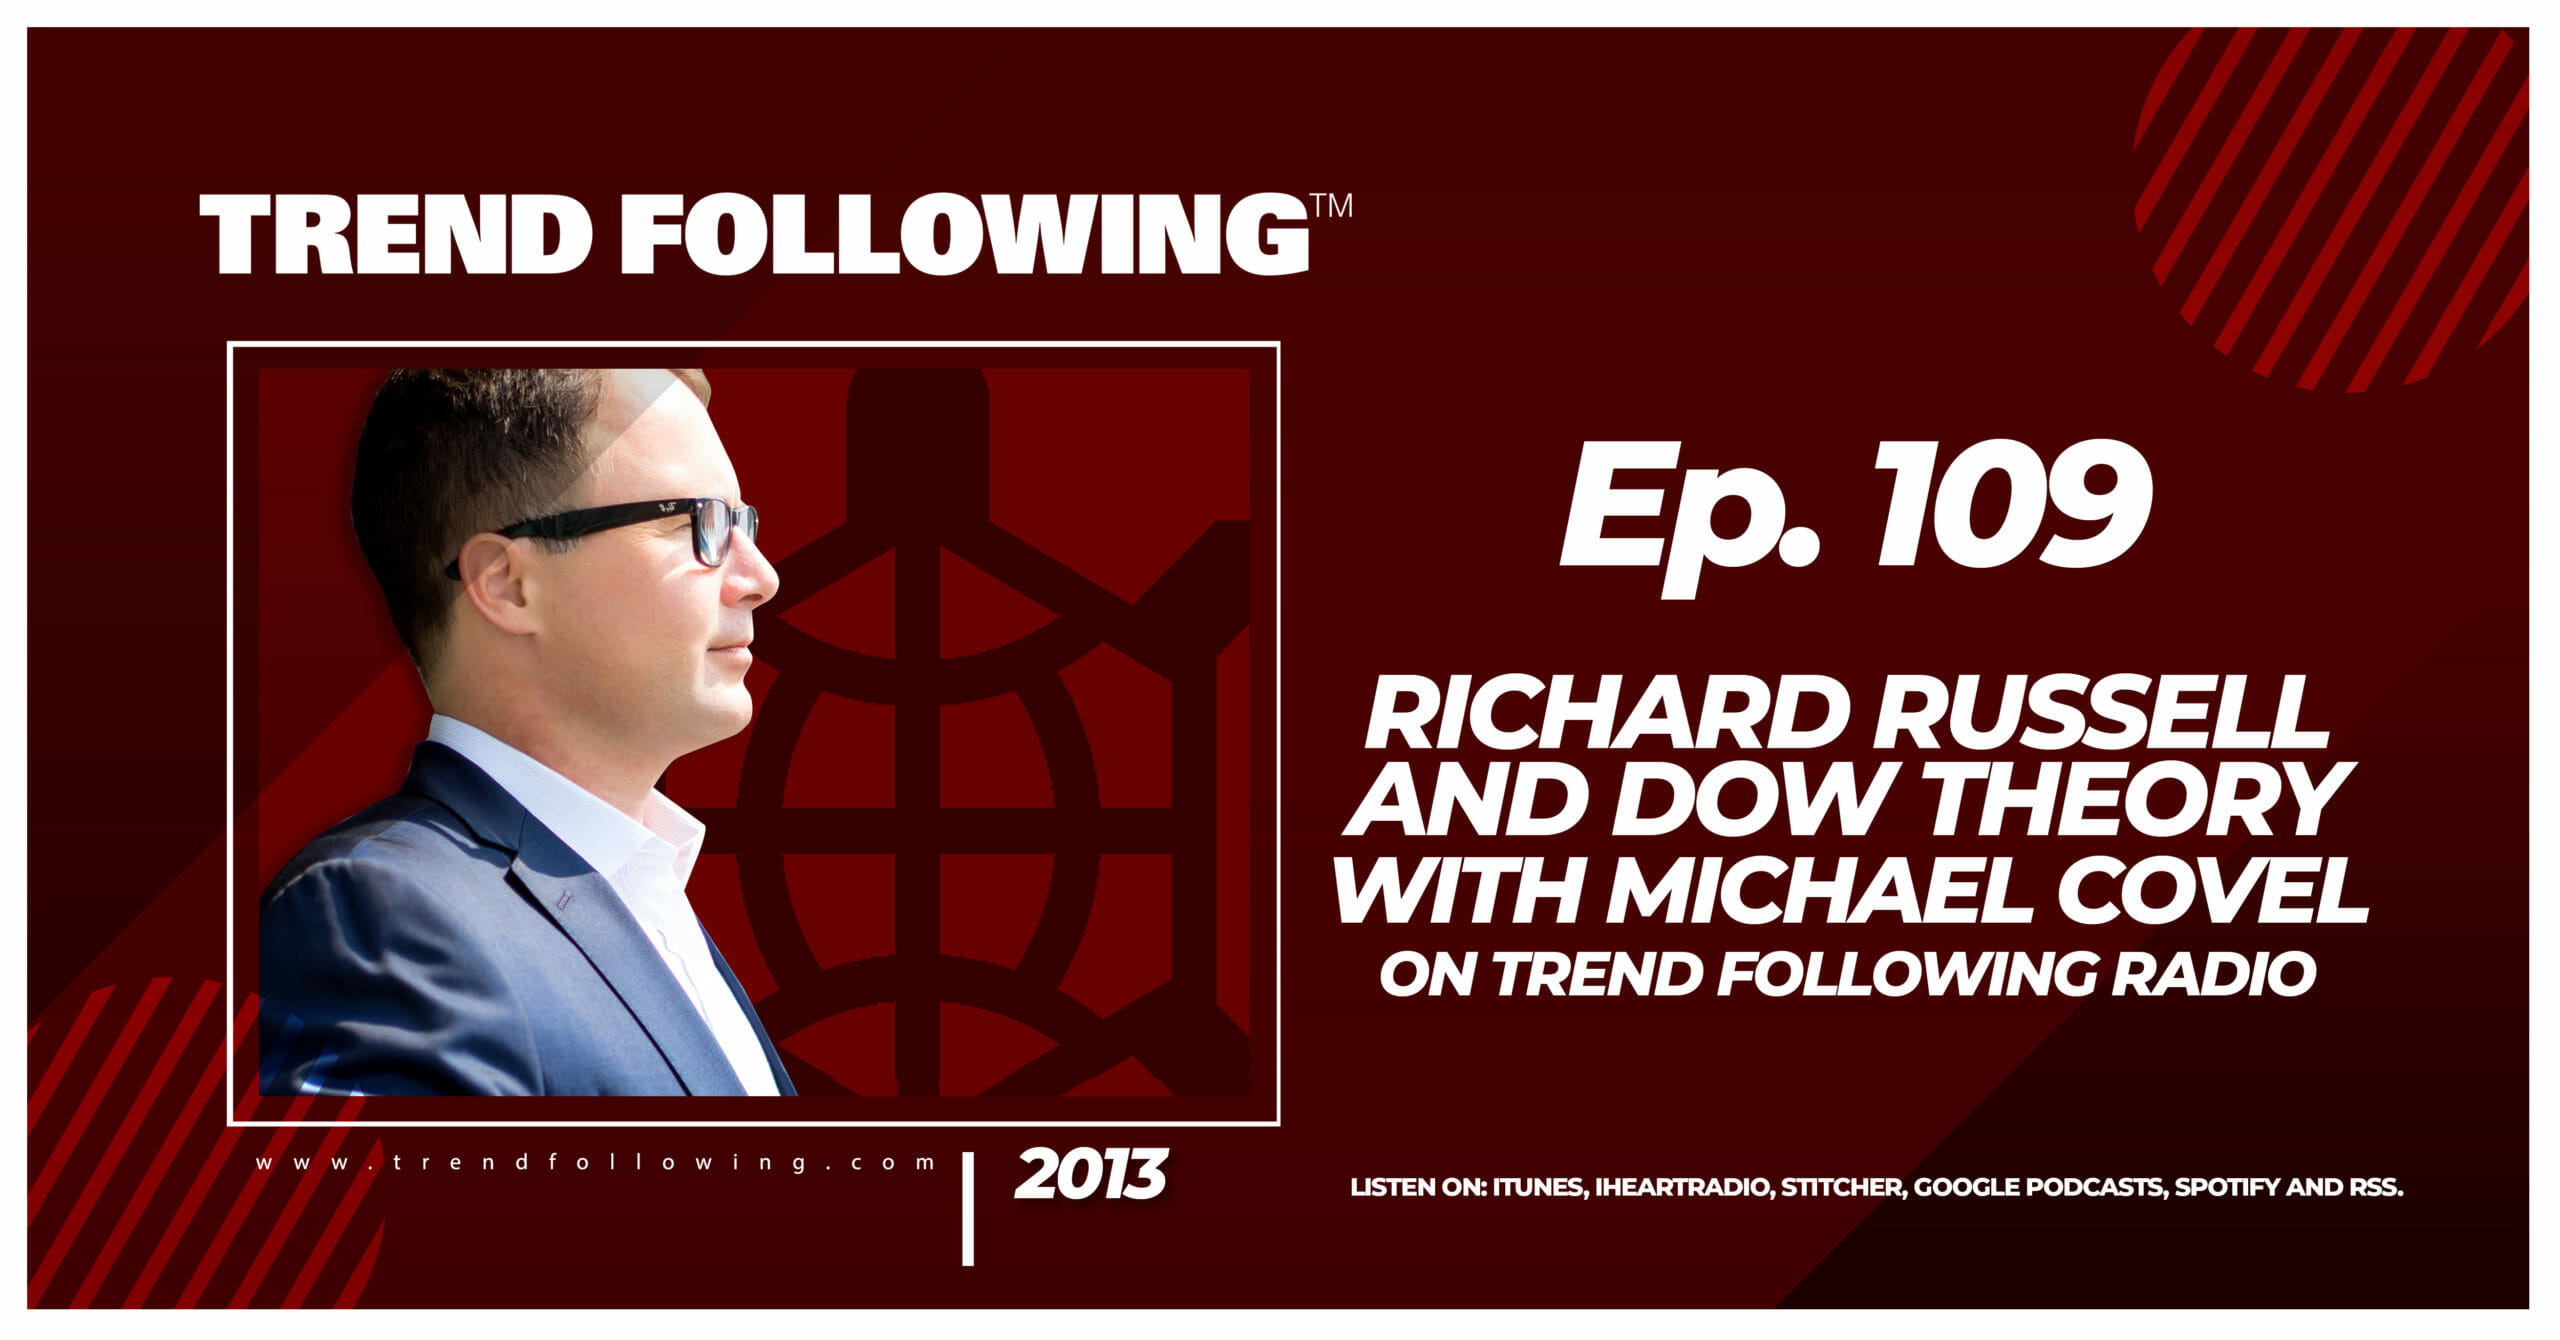 Richard Russell and Dow Theory with Michael Covel on Trend Following Radio